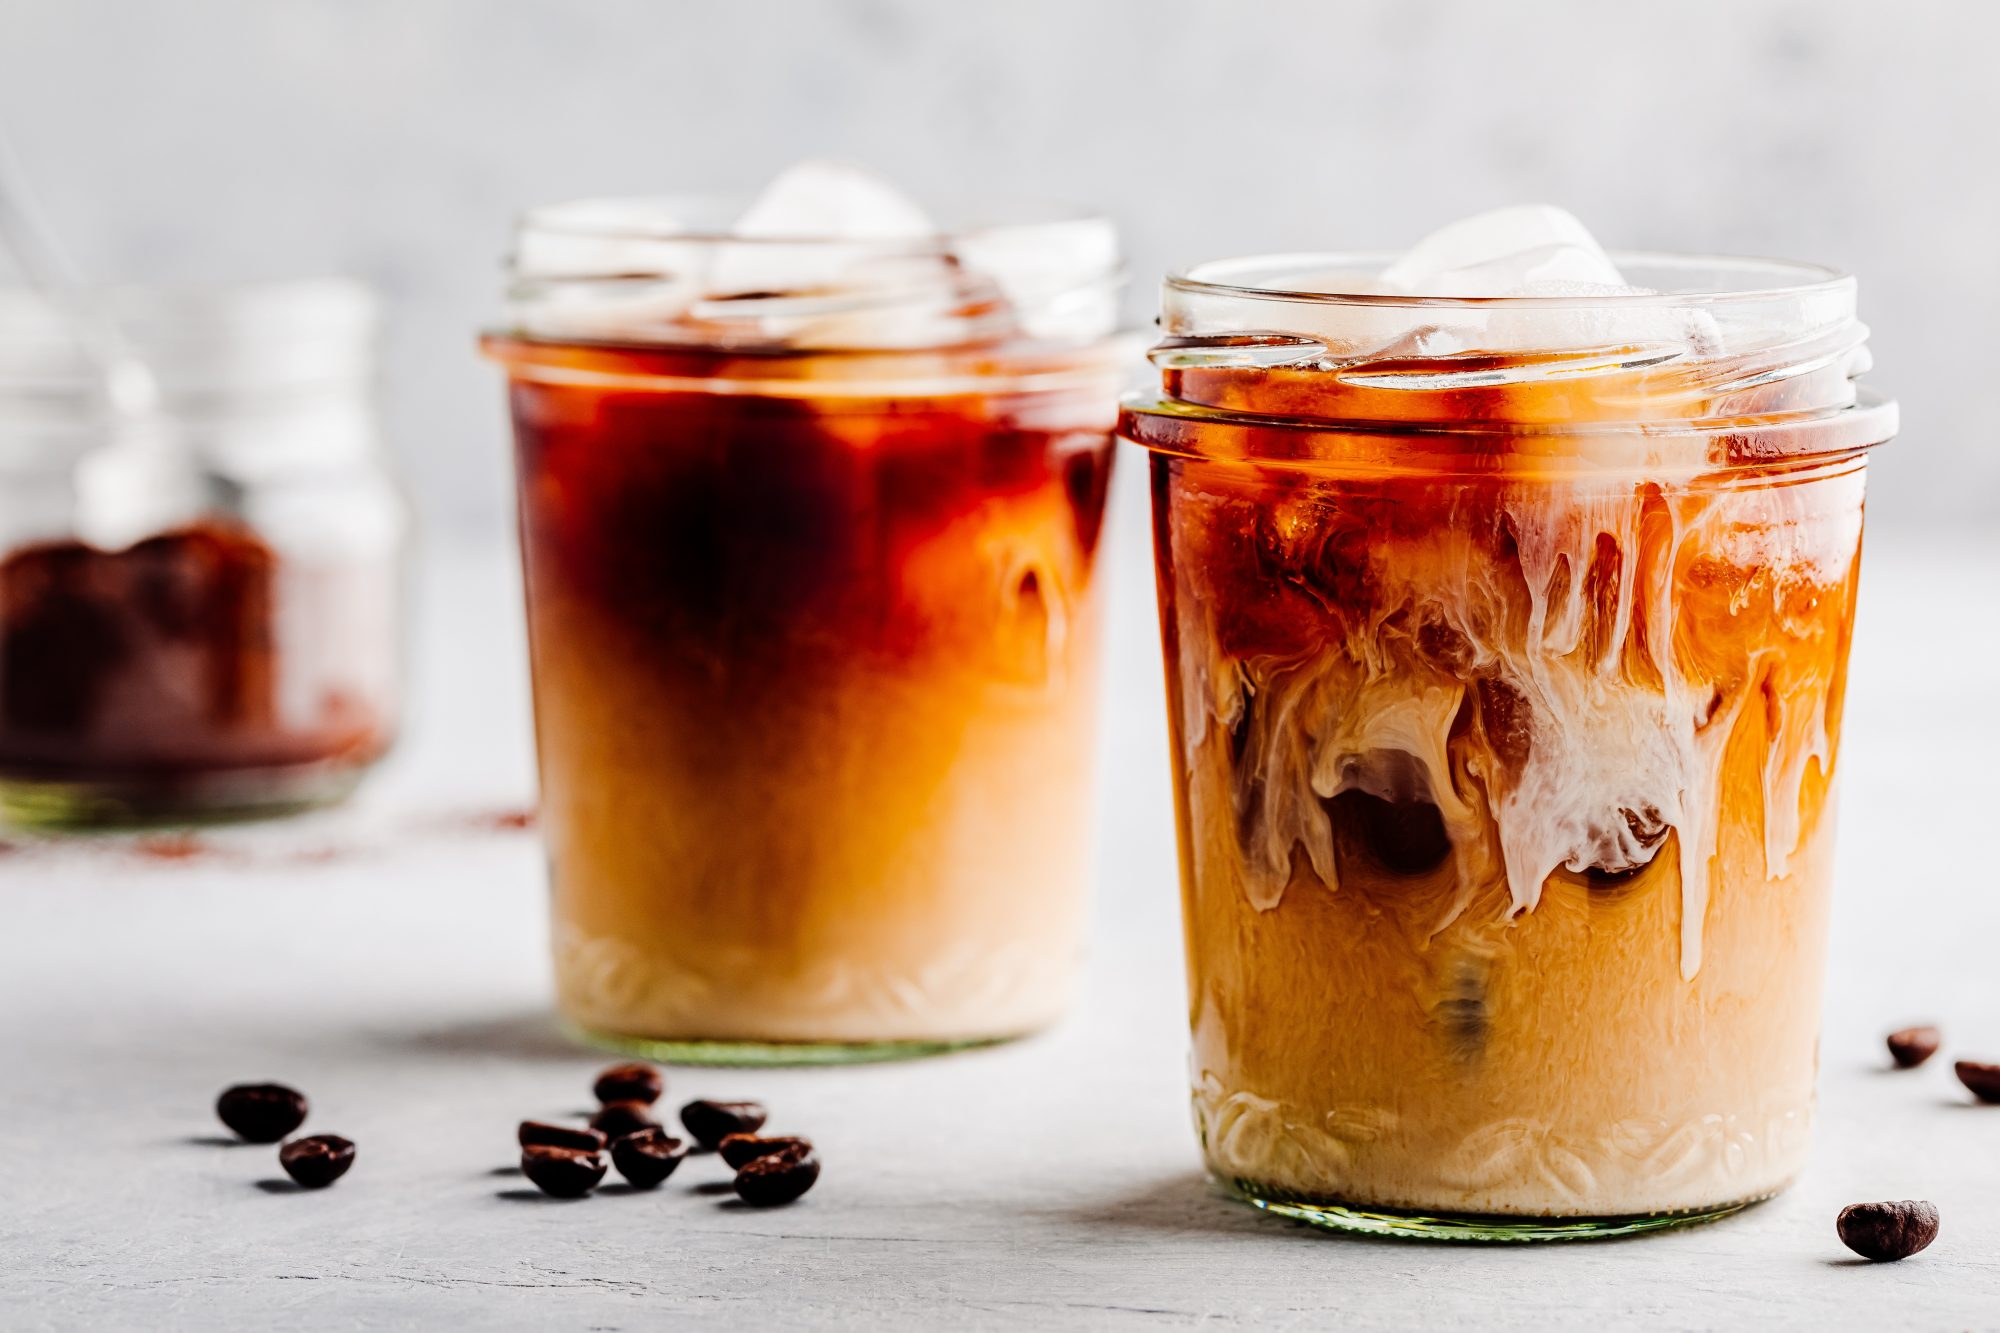 Desperately Groggy Situations Call For This Double Cold Brew Concentrate